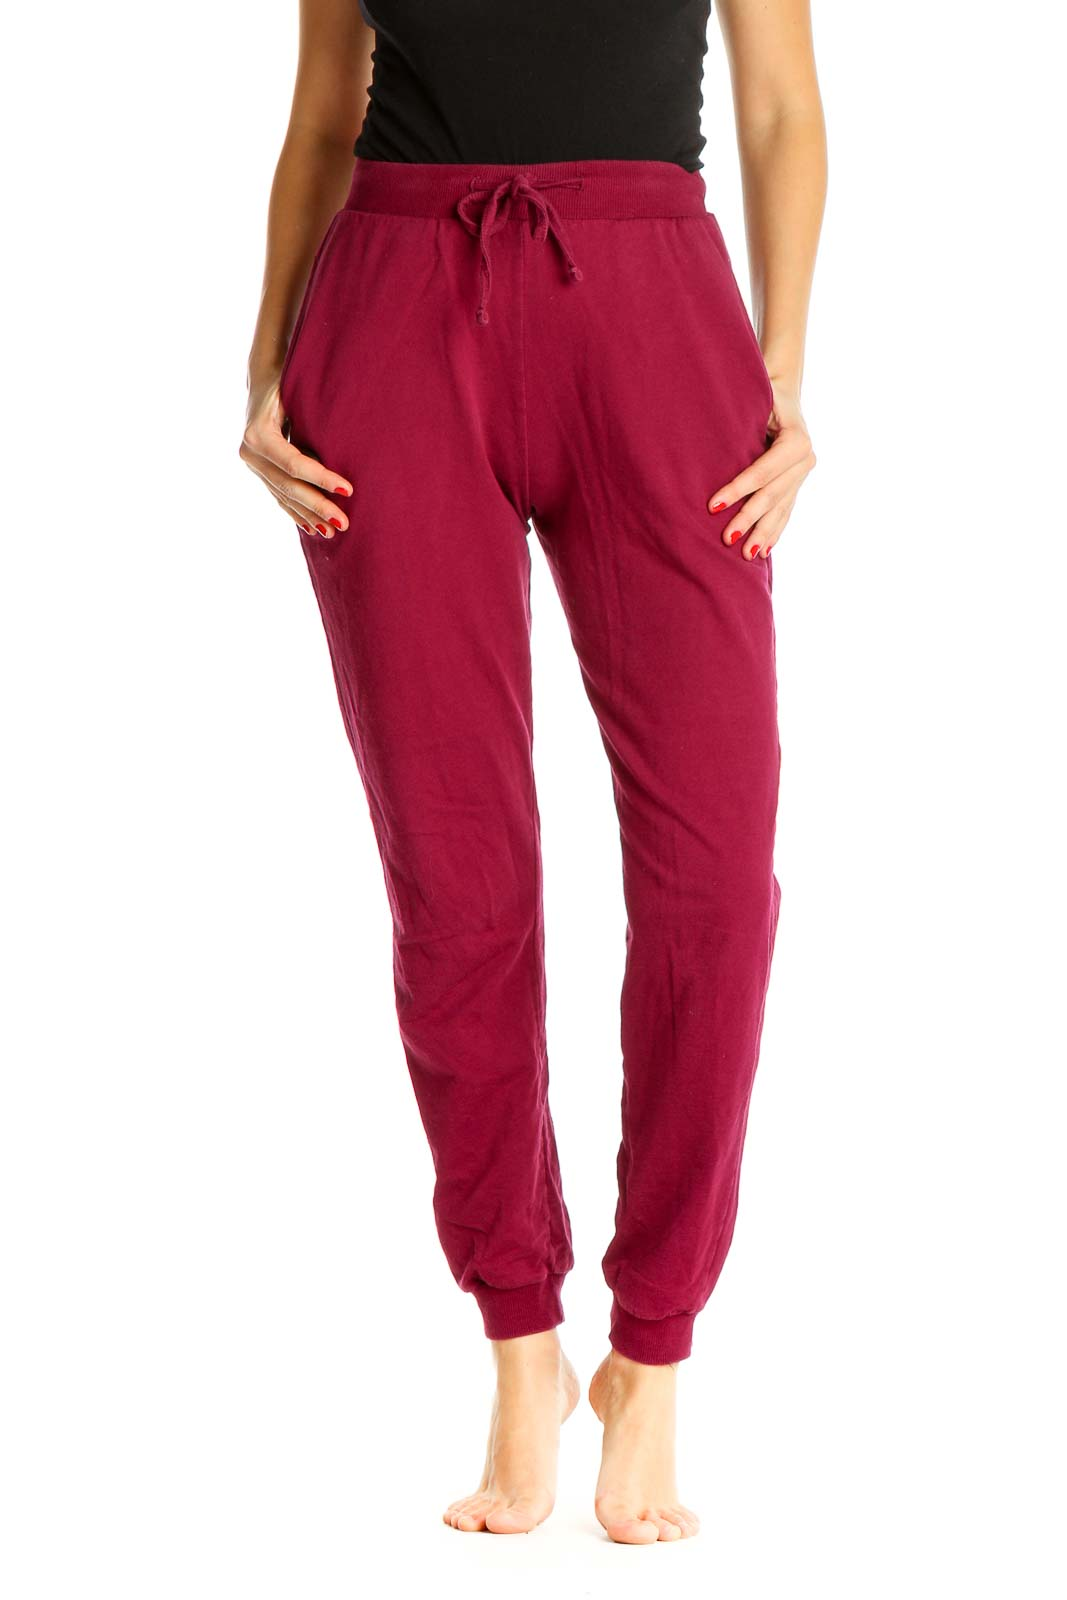 Red Solid Activewear Sweatpants Front